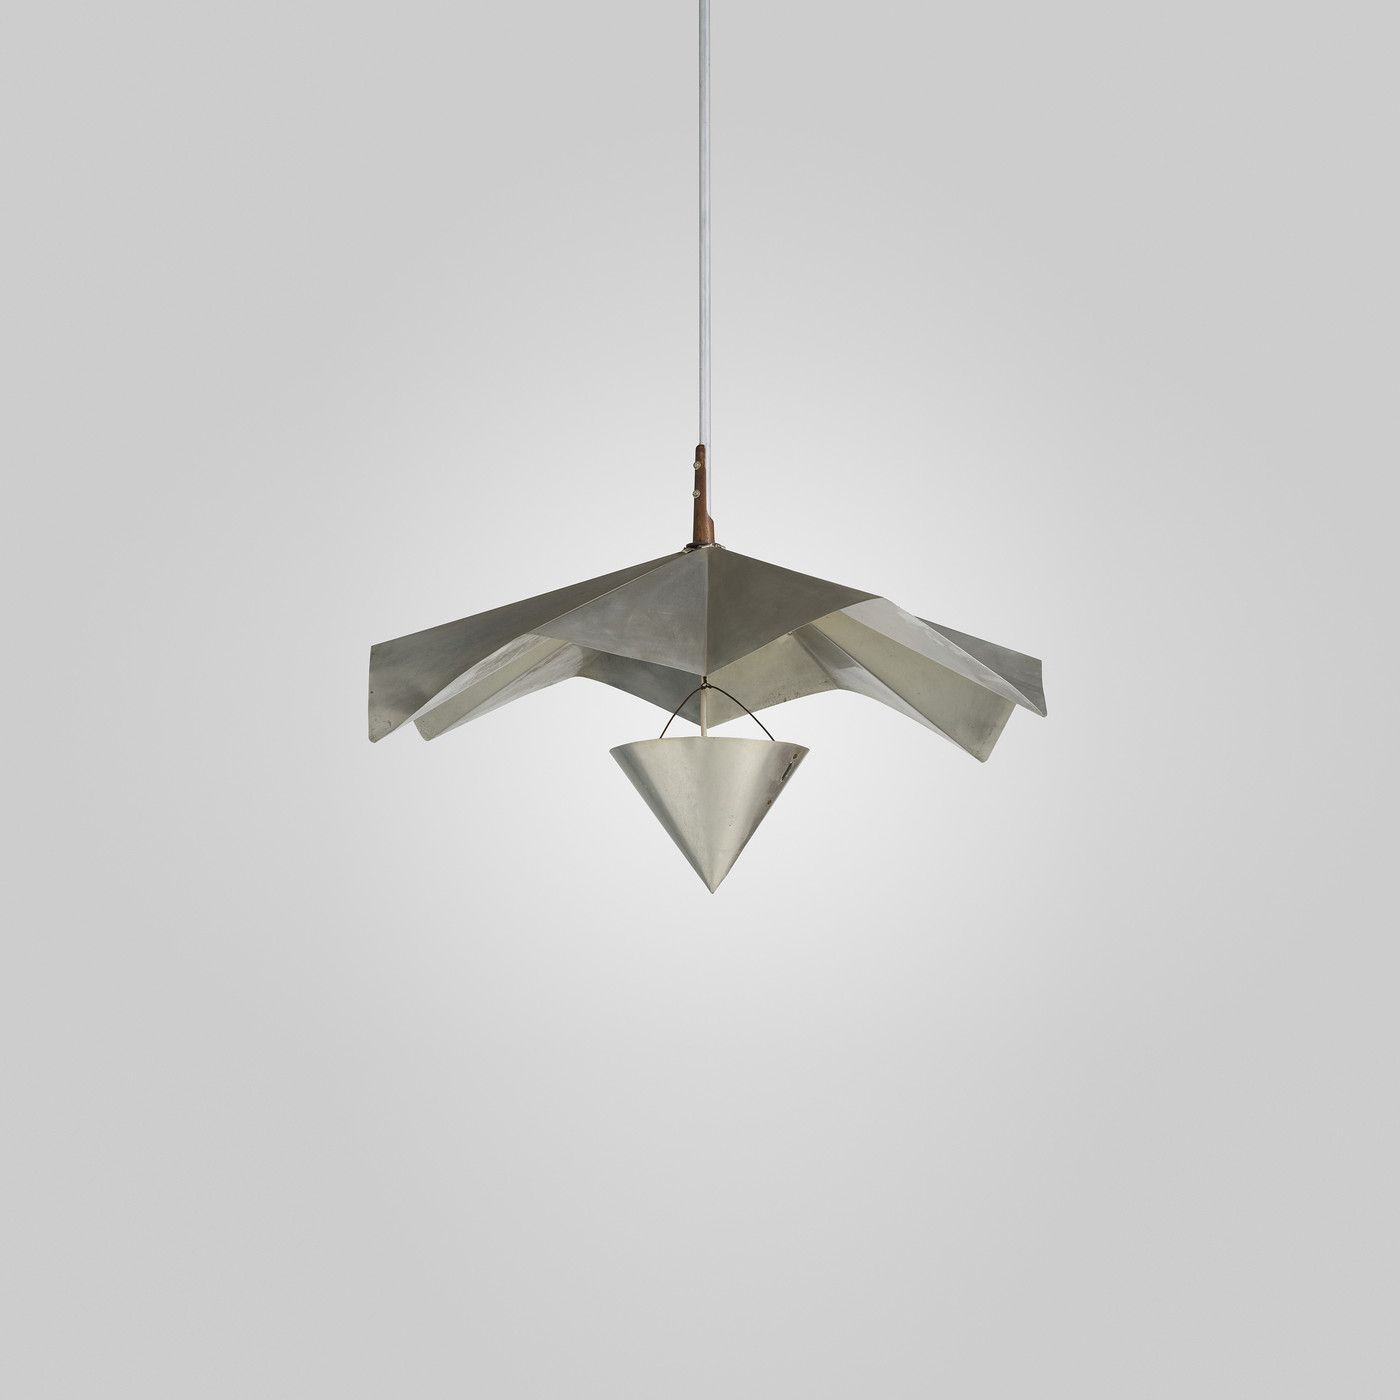 1 Alexander Calder Light Fixture For L Onie And Geddes